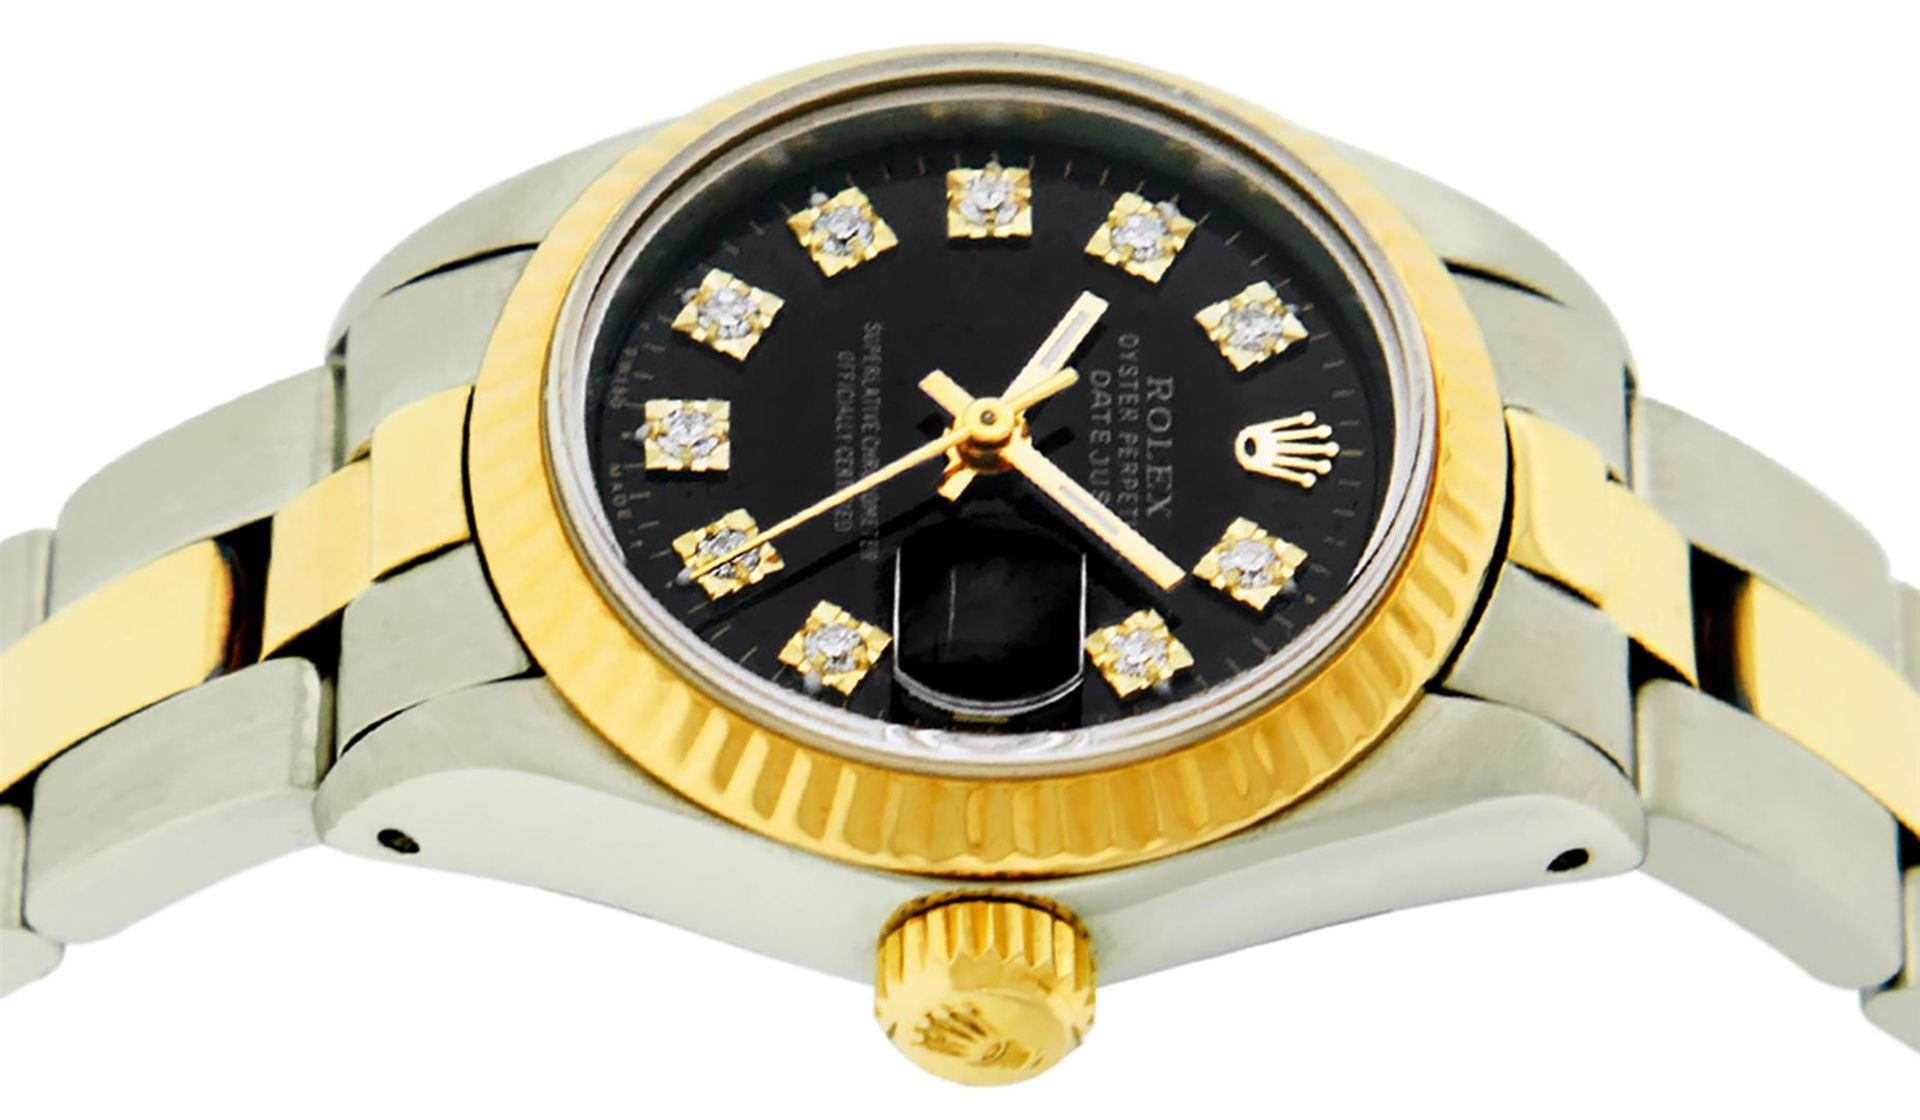 Rolex Ladies 26 Black Diamond Oyster Perpetual Datejust Polished Serviced - Image 9 of 9